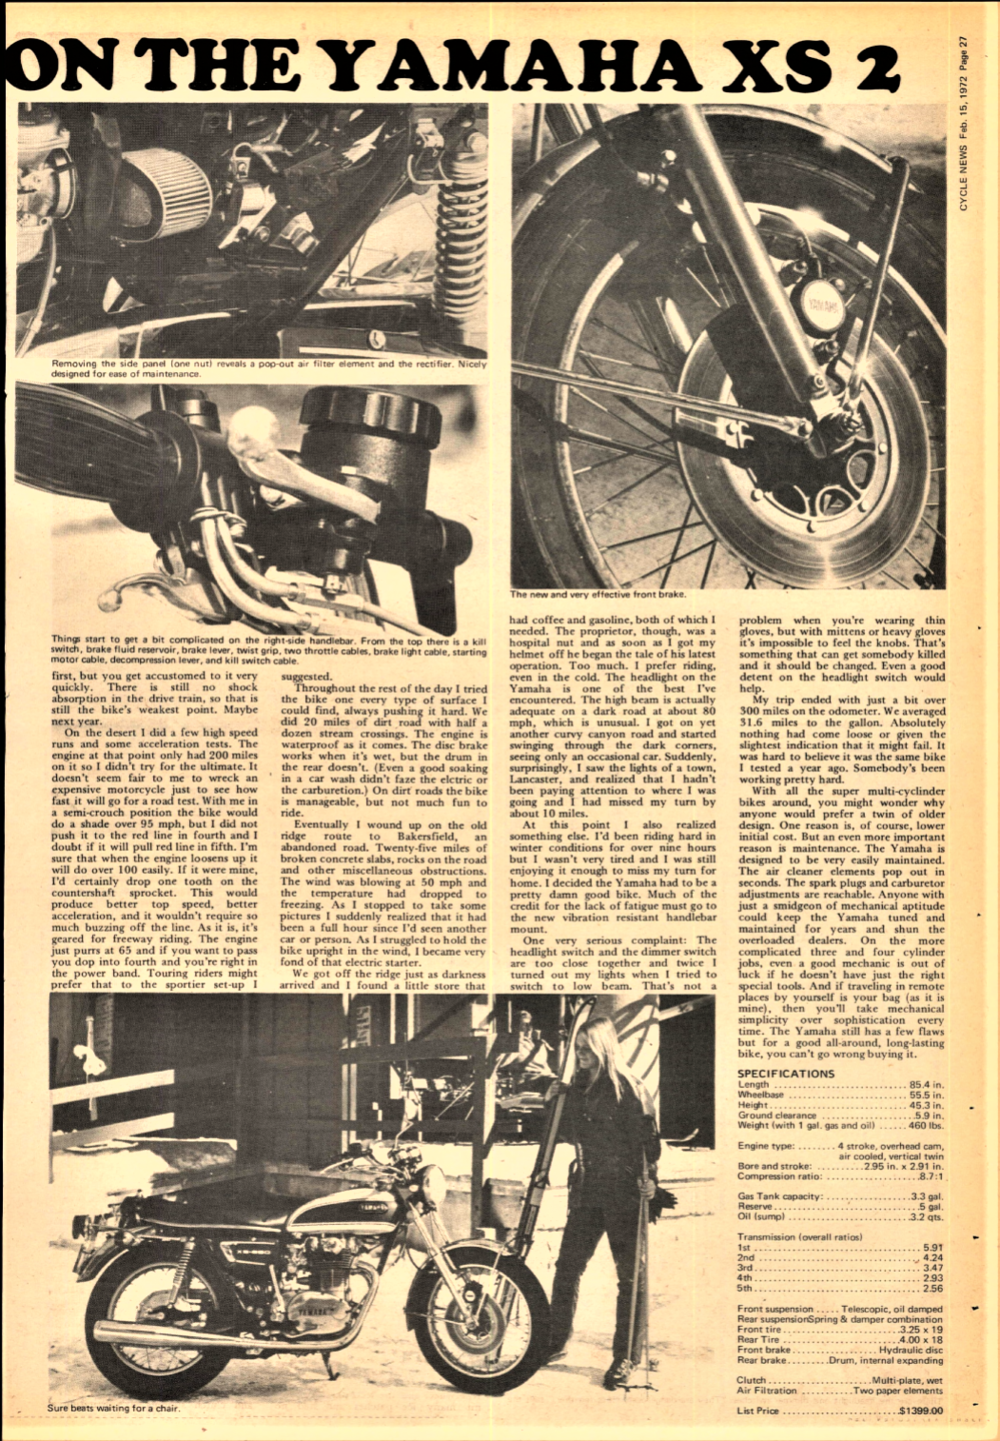 1972 Yamaha XS-2 road test.2.jpg